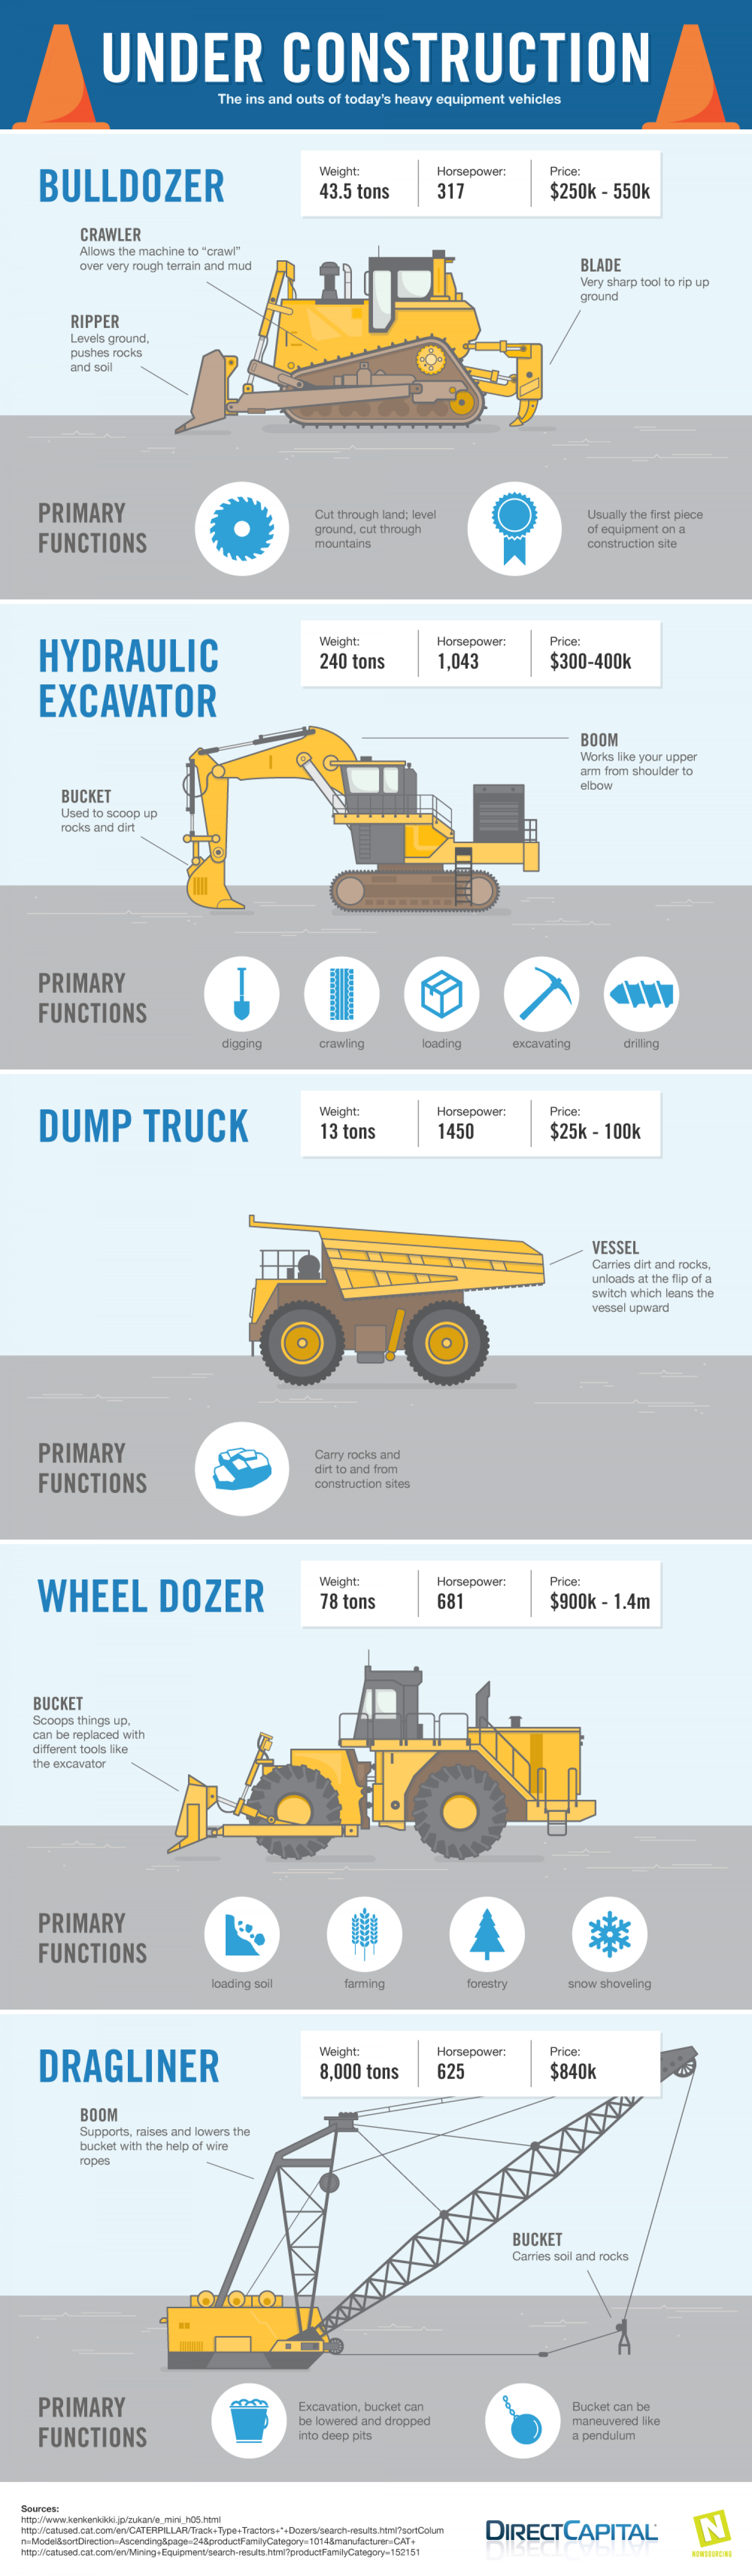 Under Construction Infographic